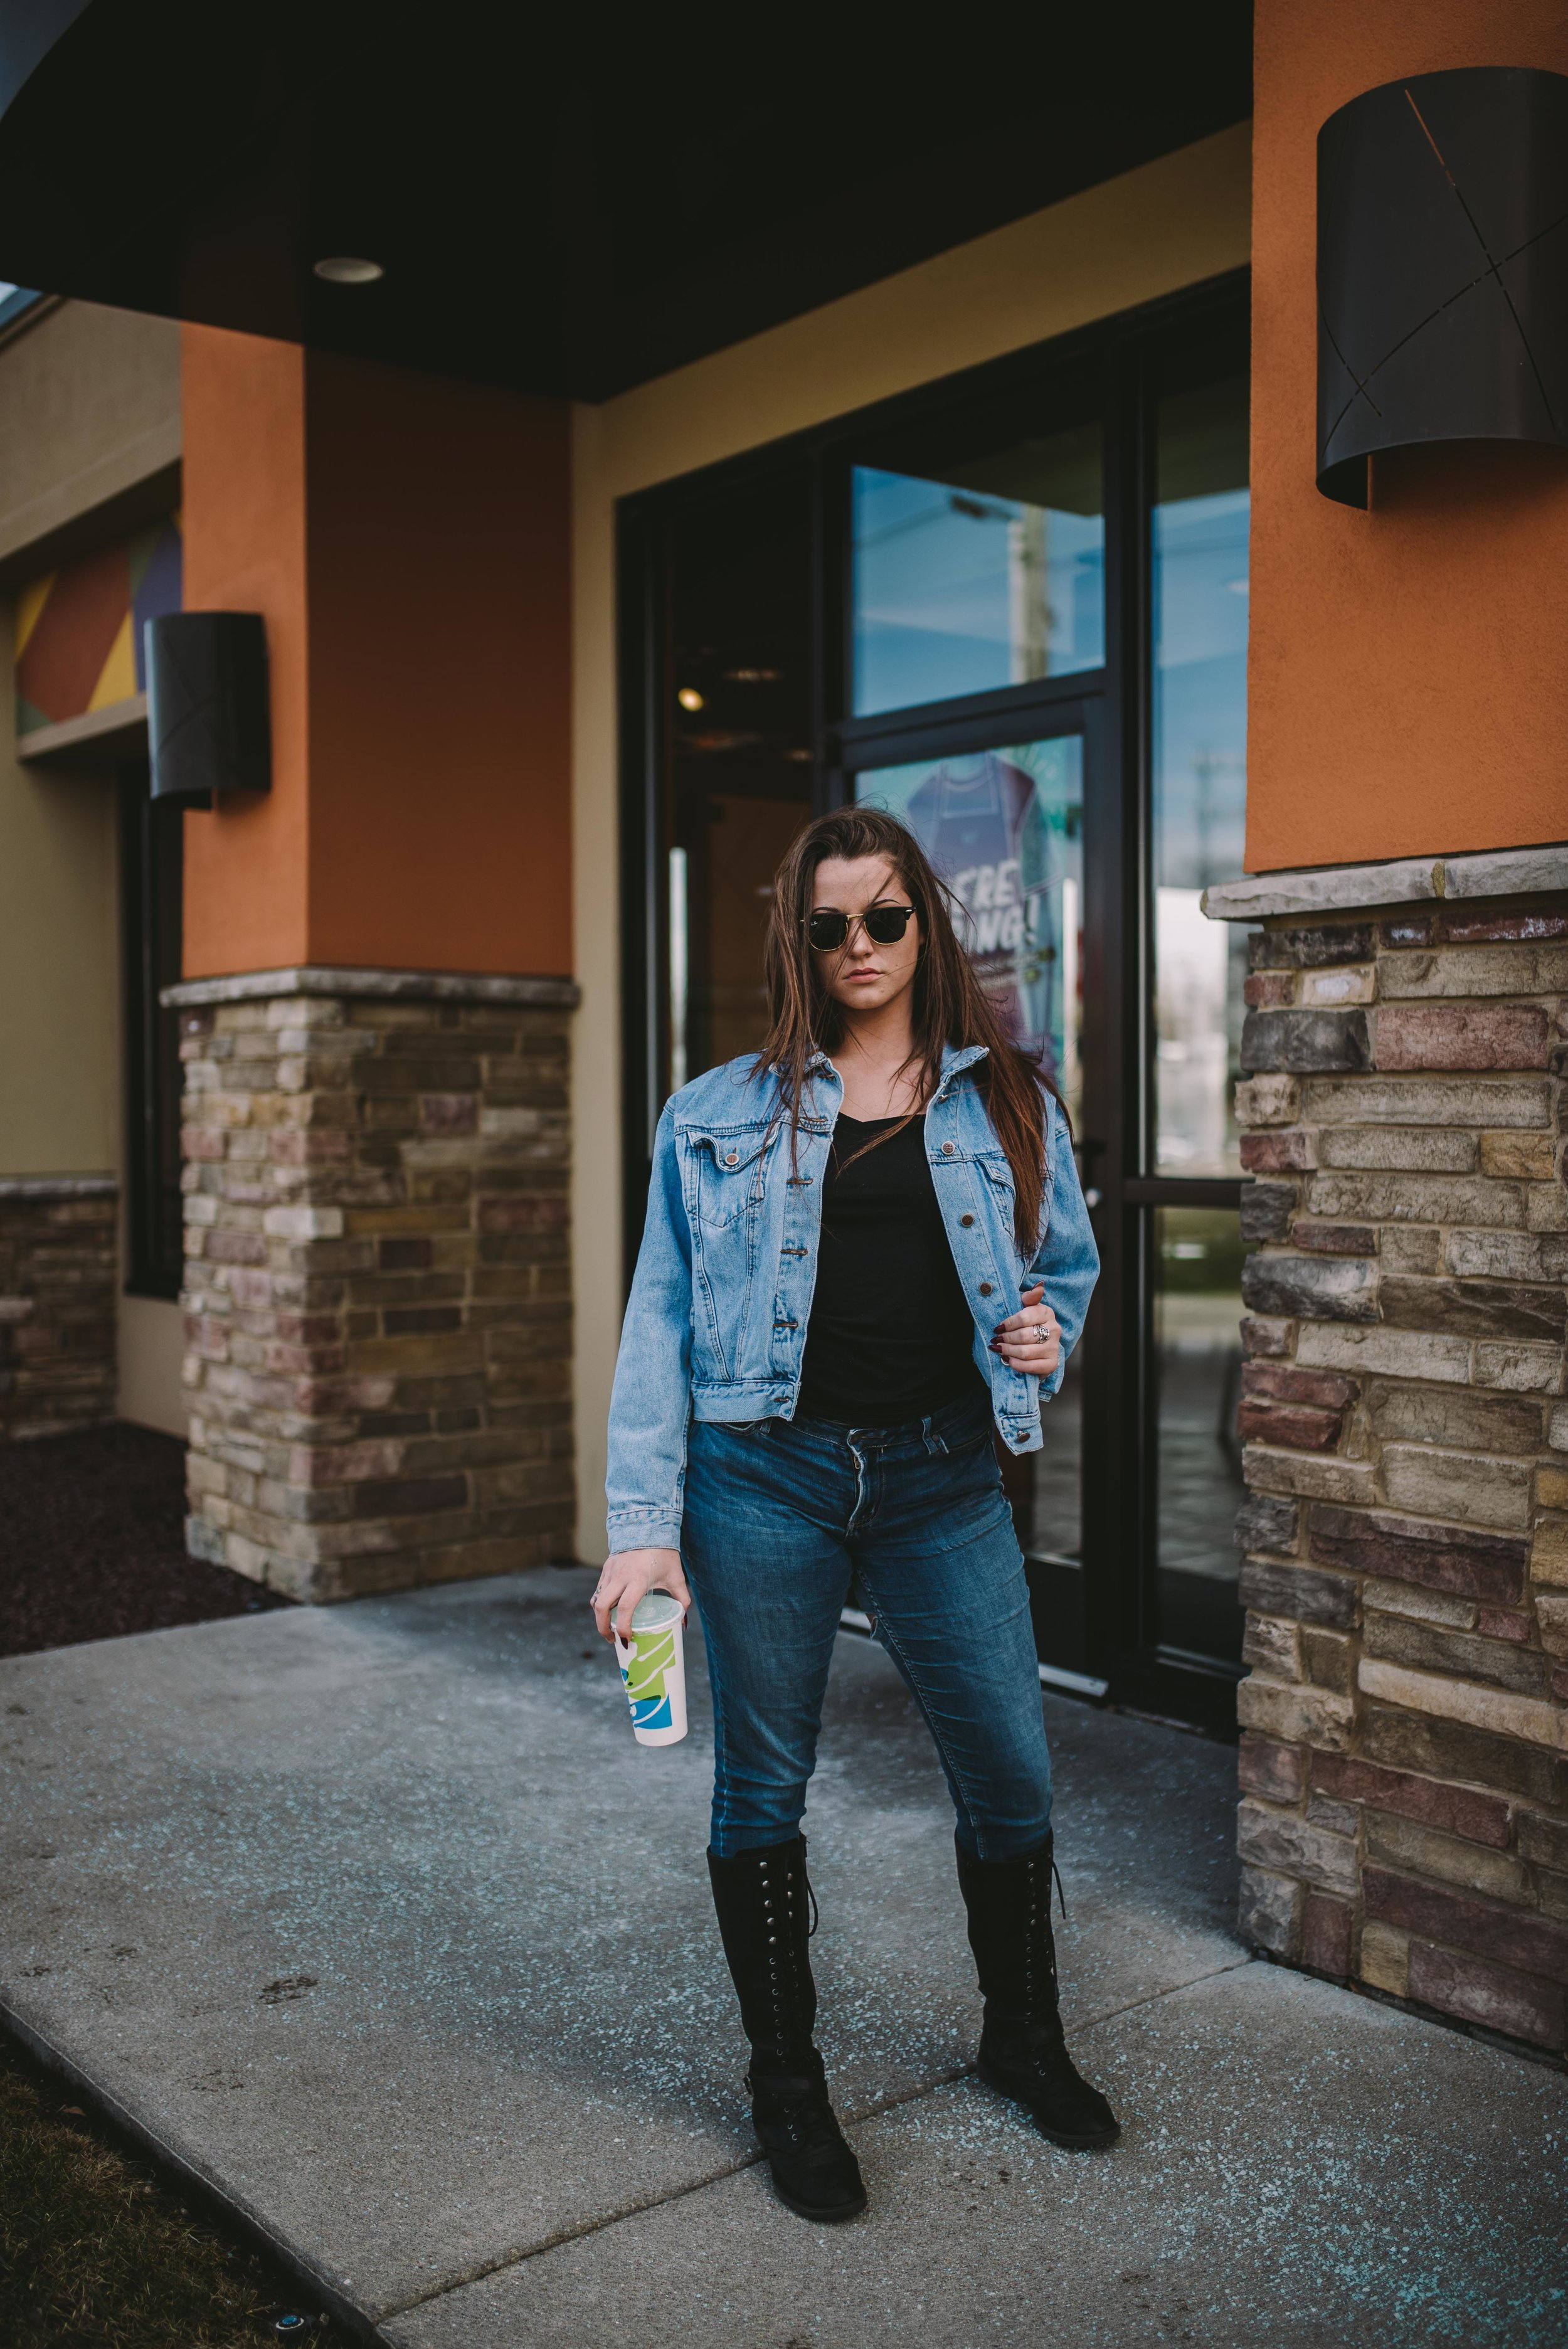 FastFoodPhotoChallenge_KaitlinRomack_March2018_Senior Photography In Tempe_ArizonaPortraitPhotographer_SamanthaRosePhotography_final_017.JPG